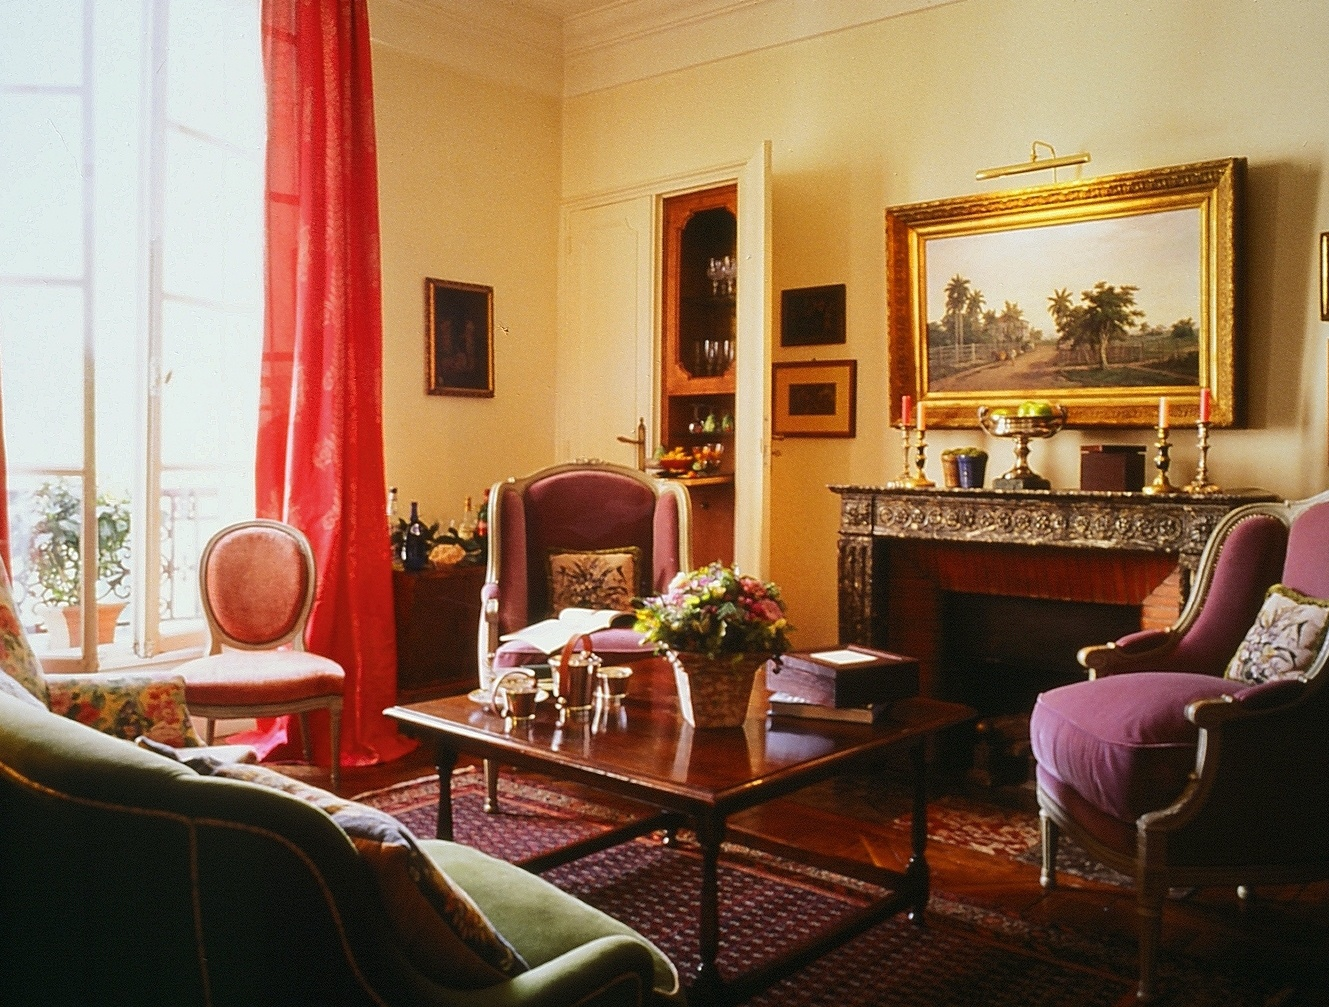 Manuel's Paris Apartment